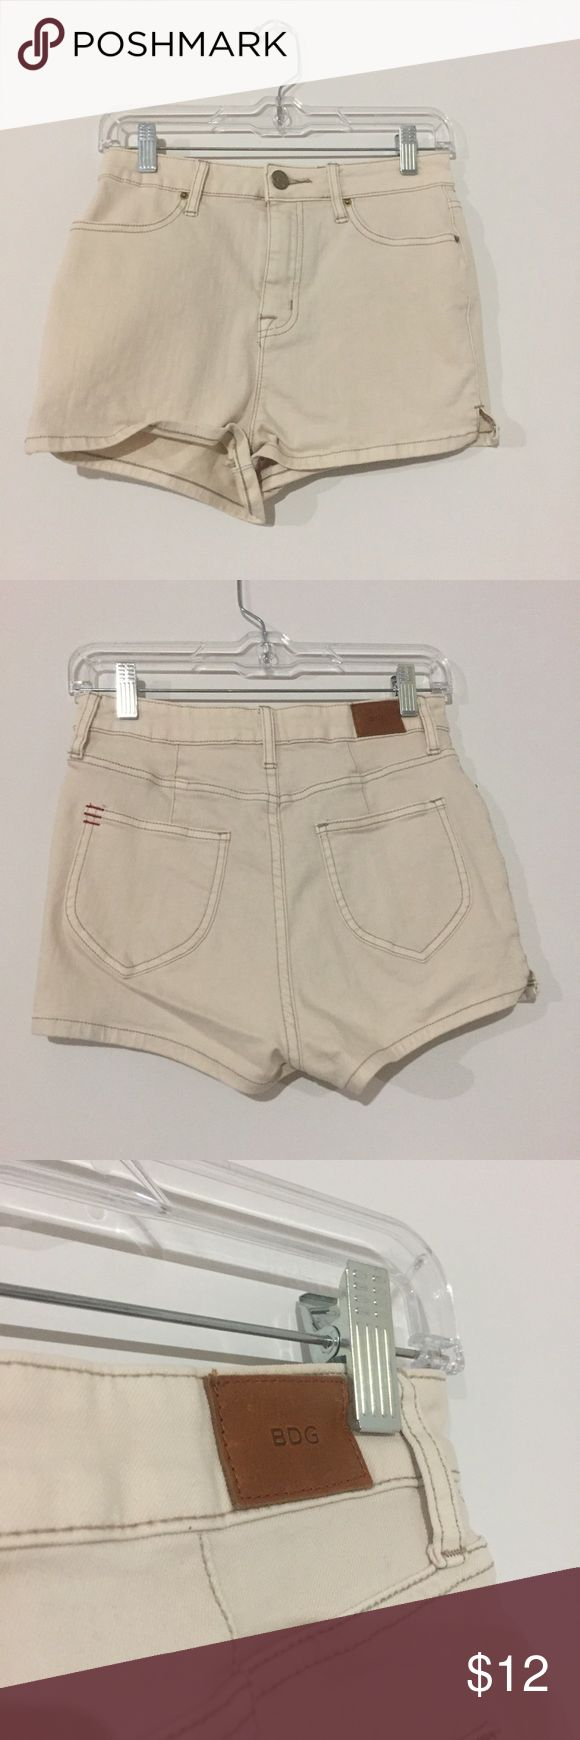 BDG Cream Shorts Like new cream colored jean shorts. Super high rise in a size 26. BDG Shorts Jean Shorts